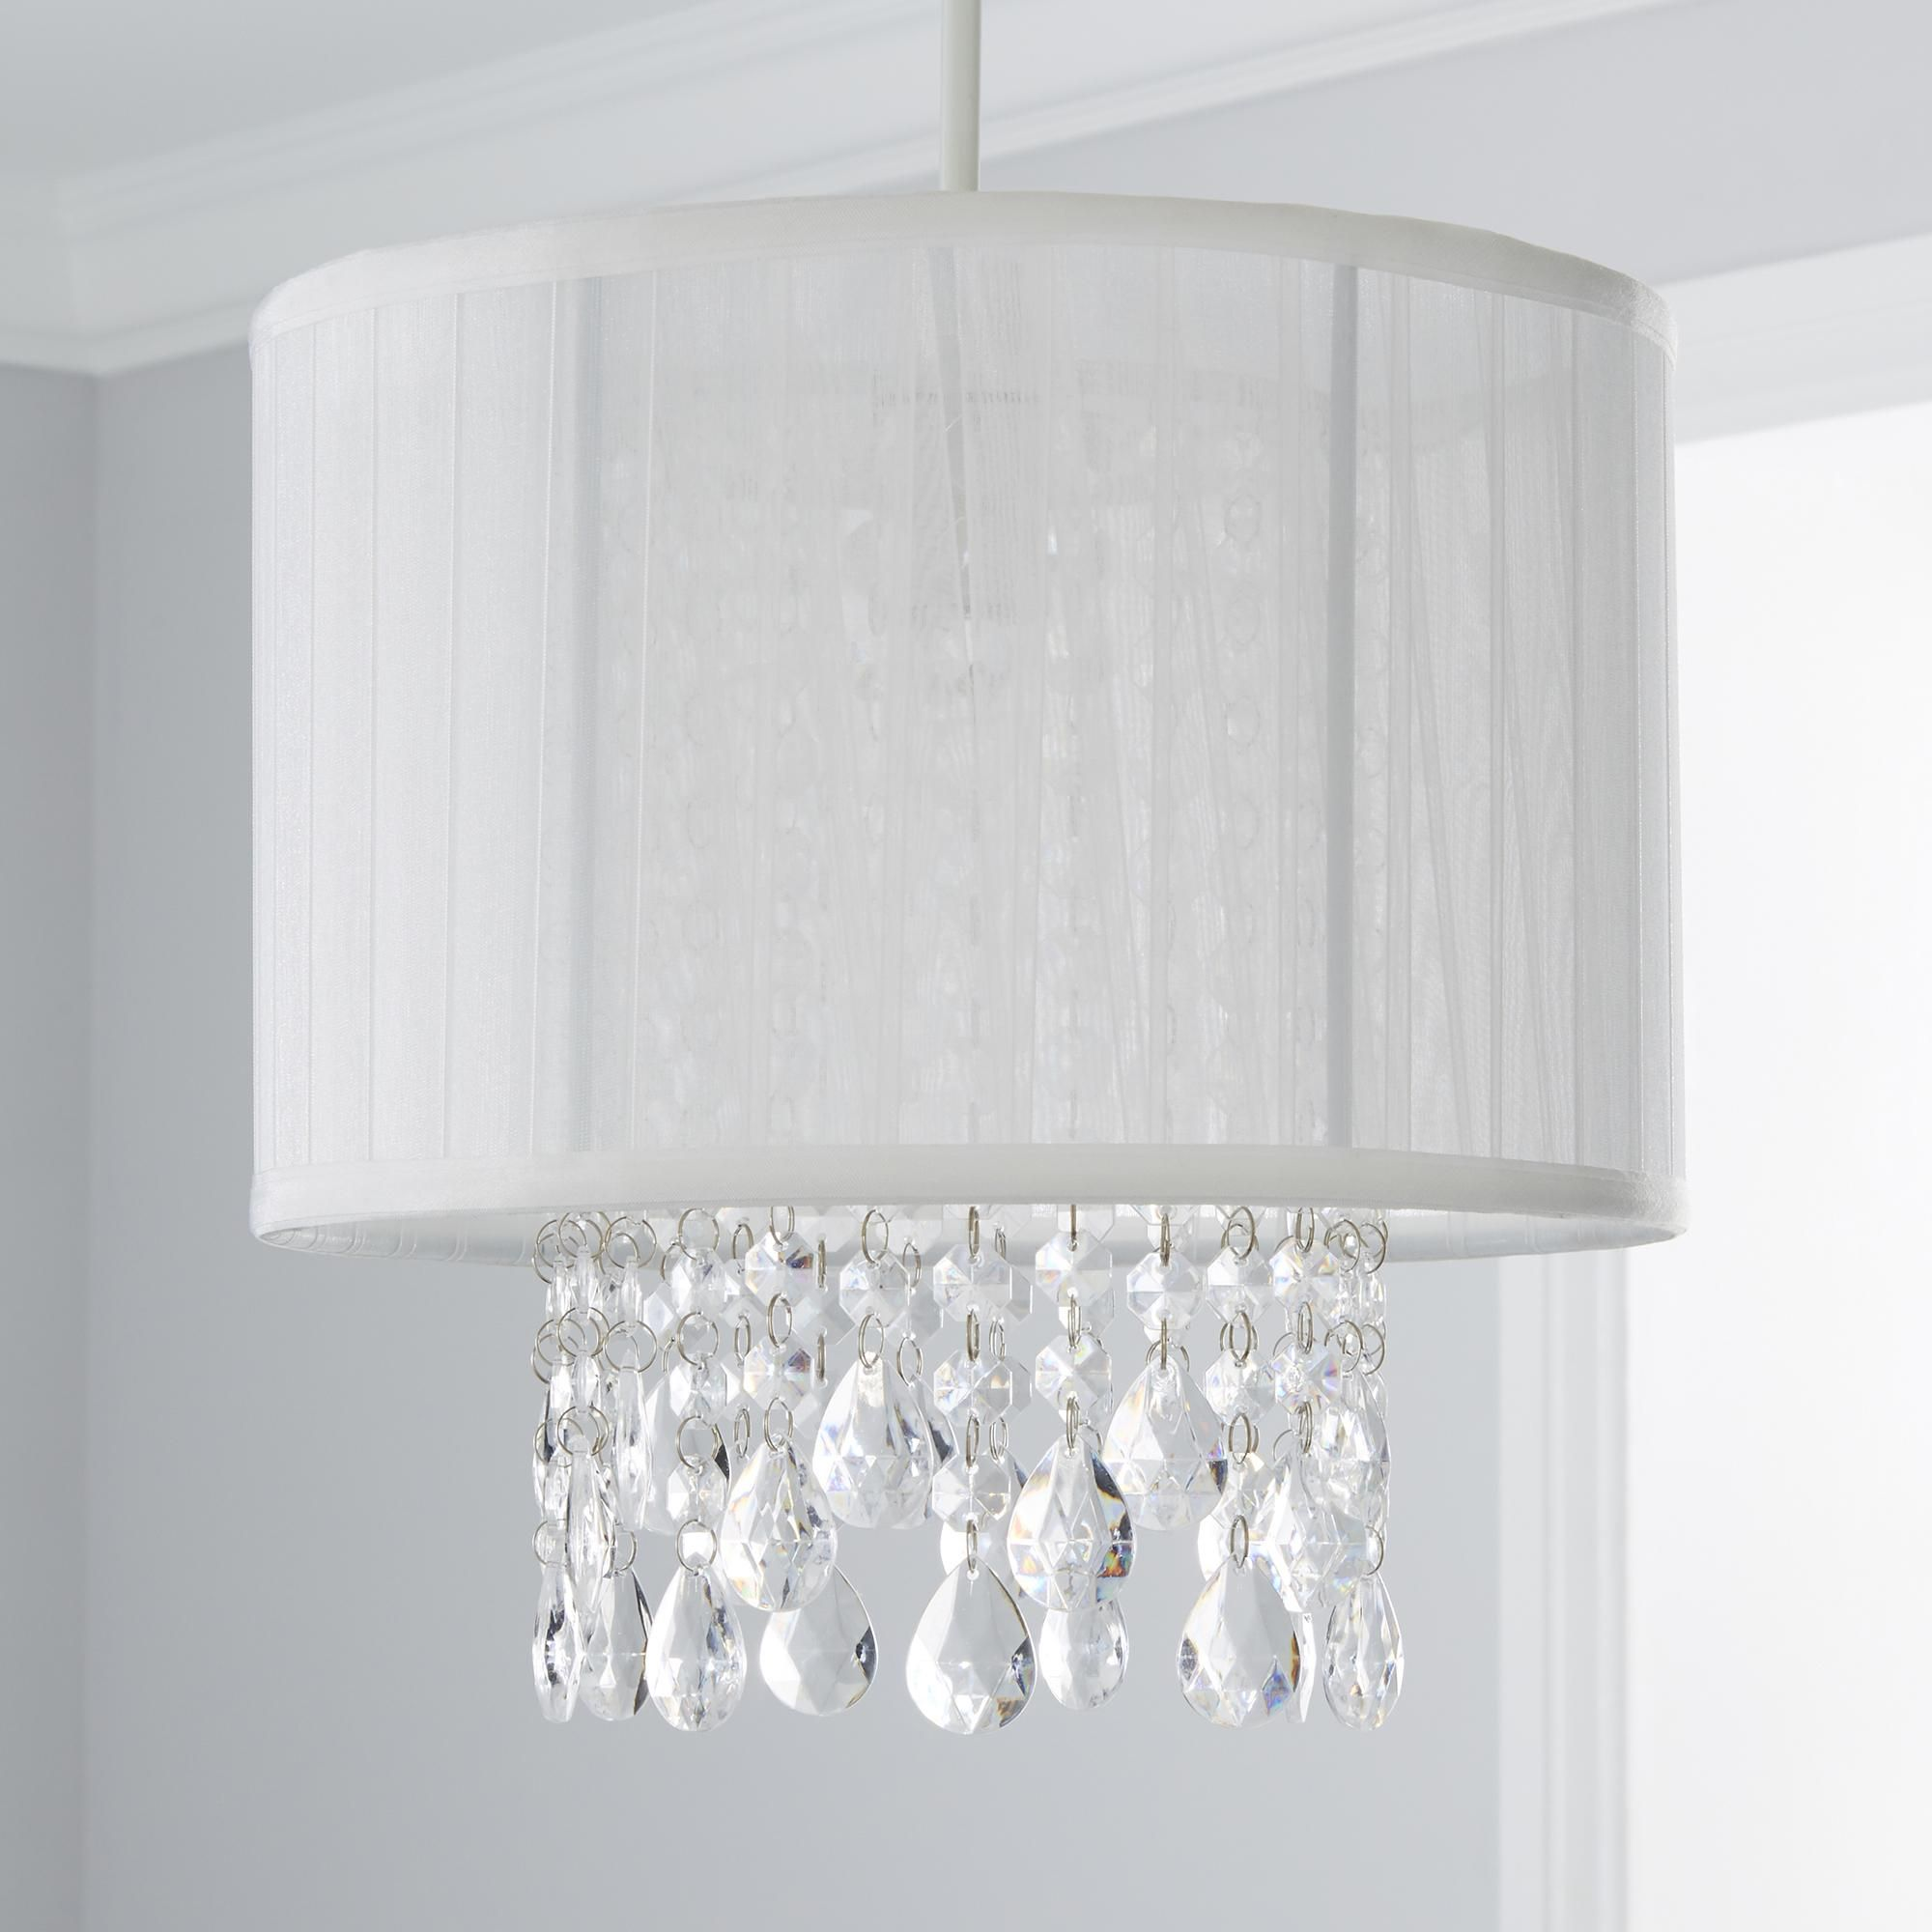 Add Understated Elegance To Your Interior With Our Ivory Ceiling